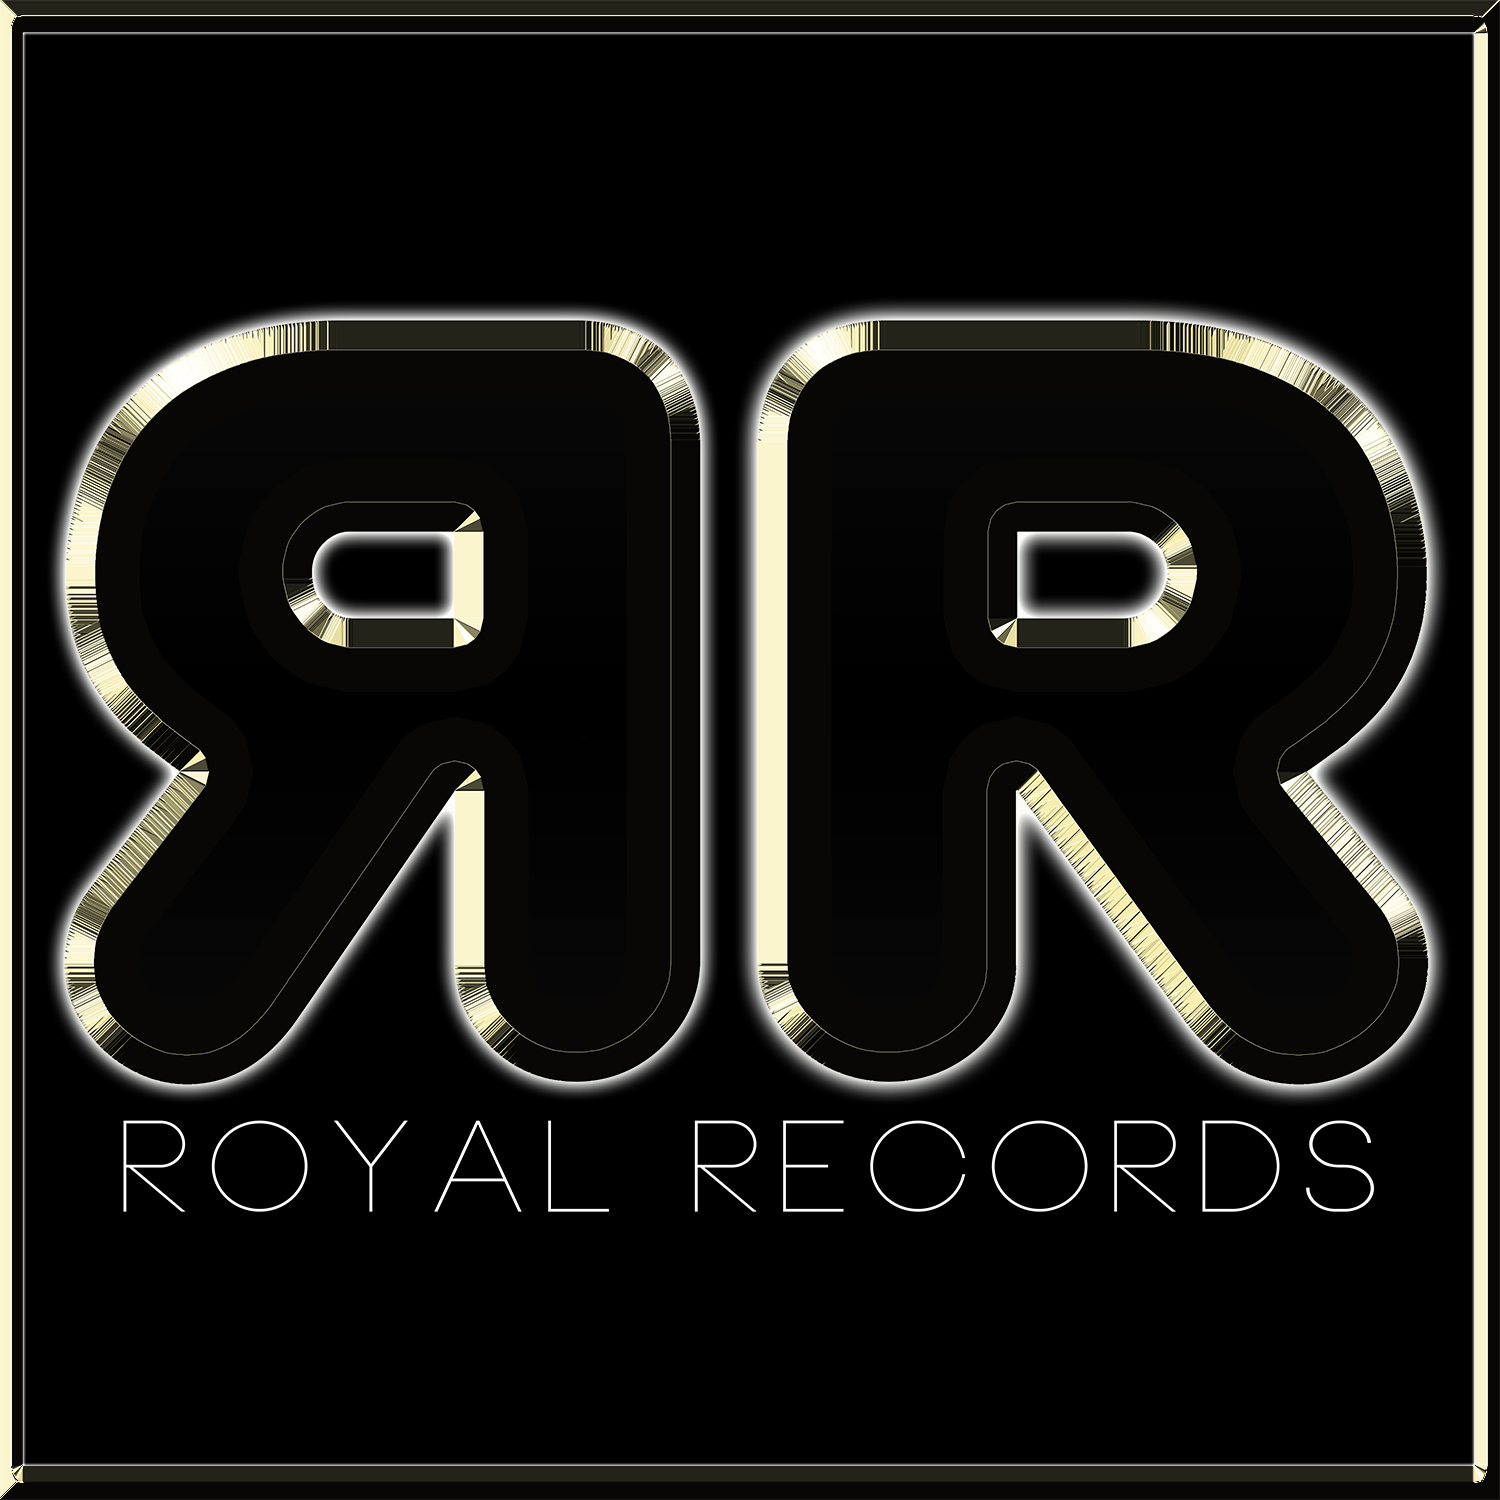 Royal records logo  square with background b